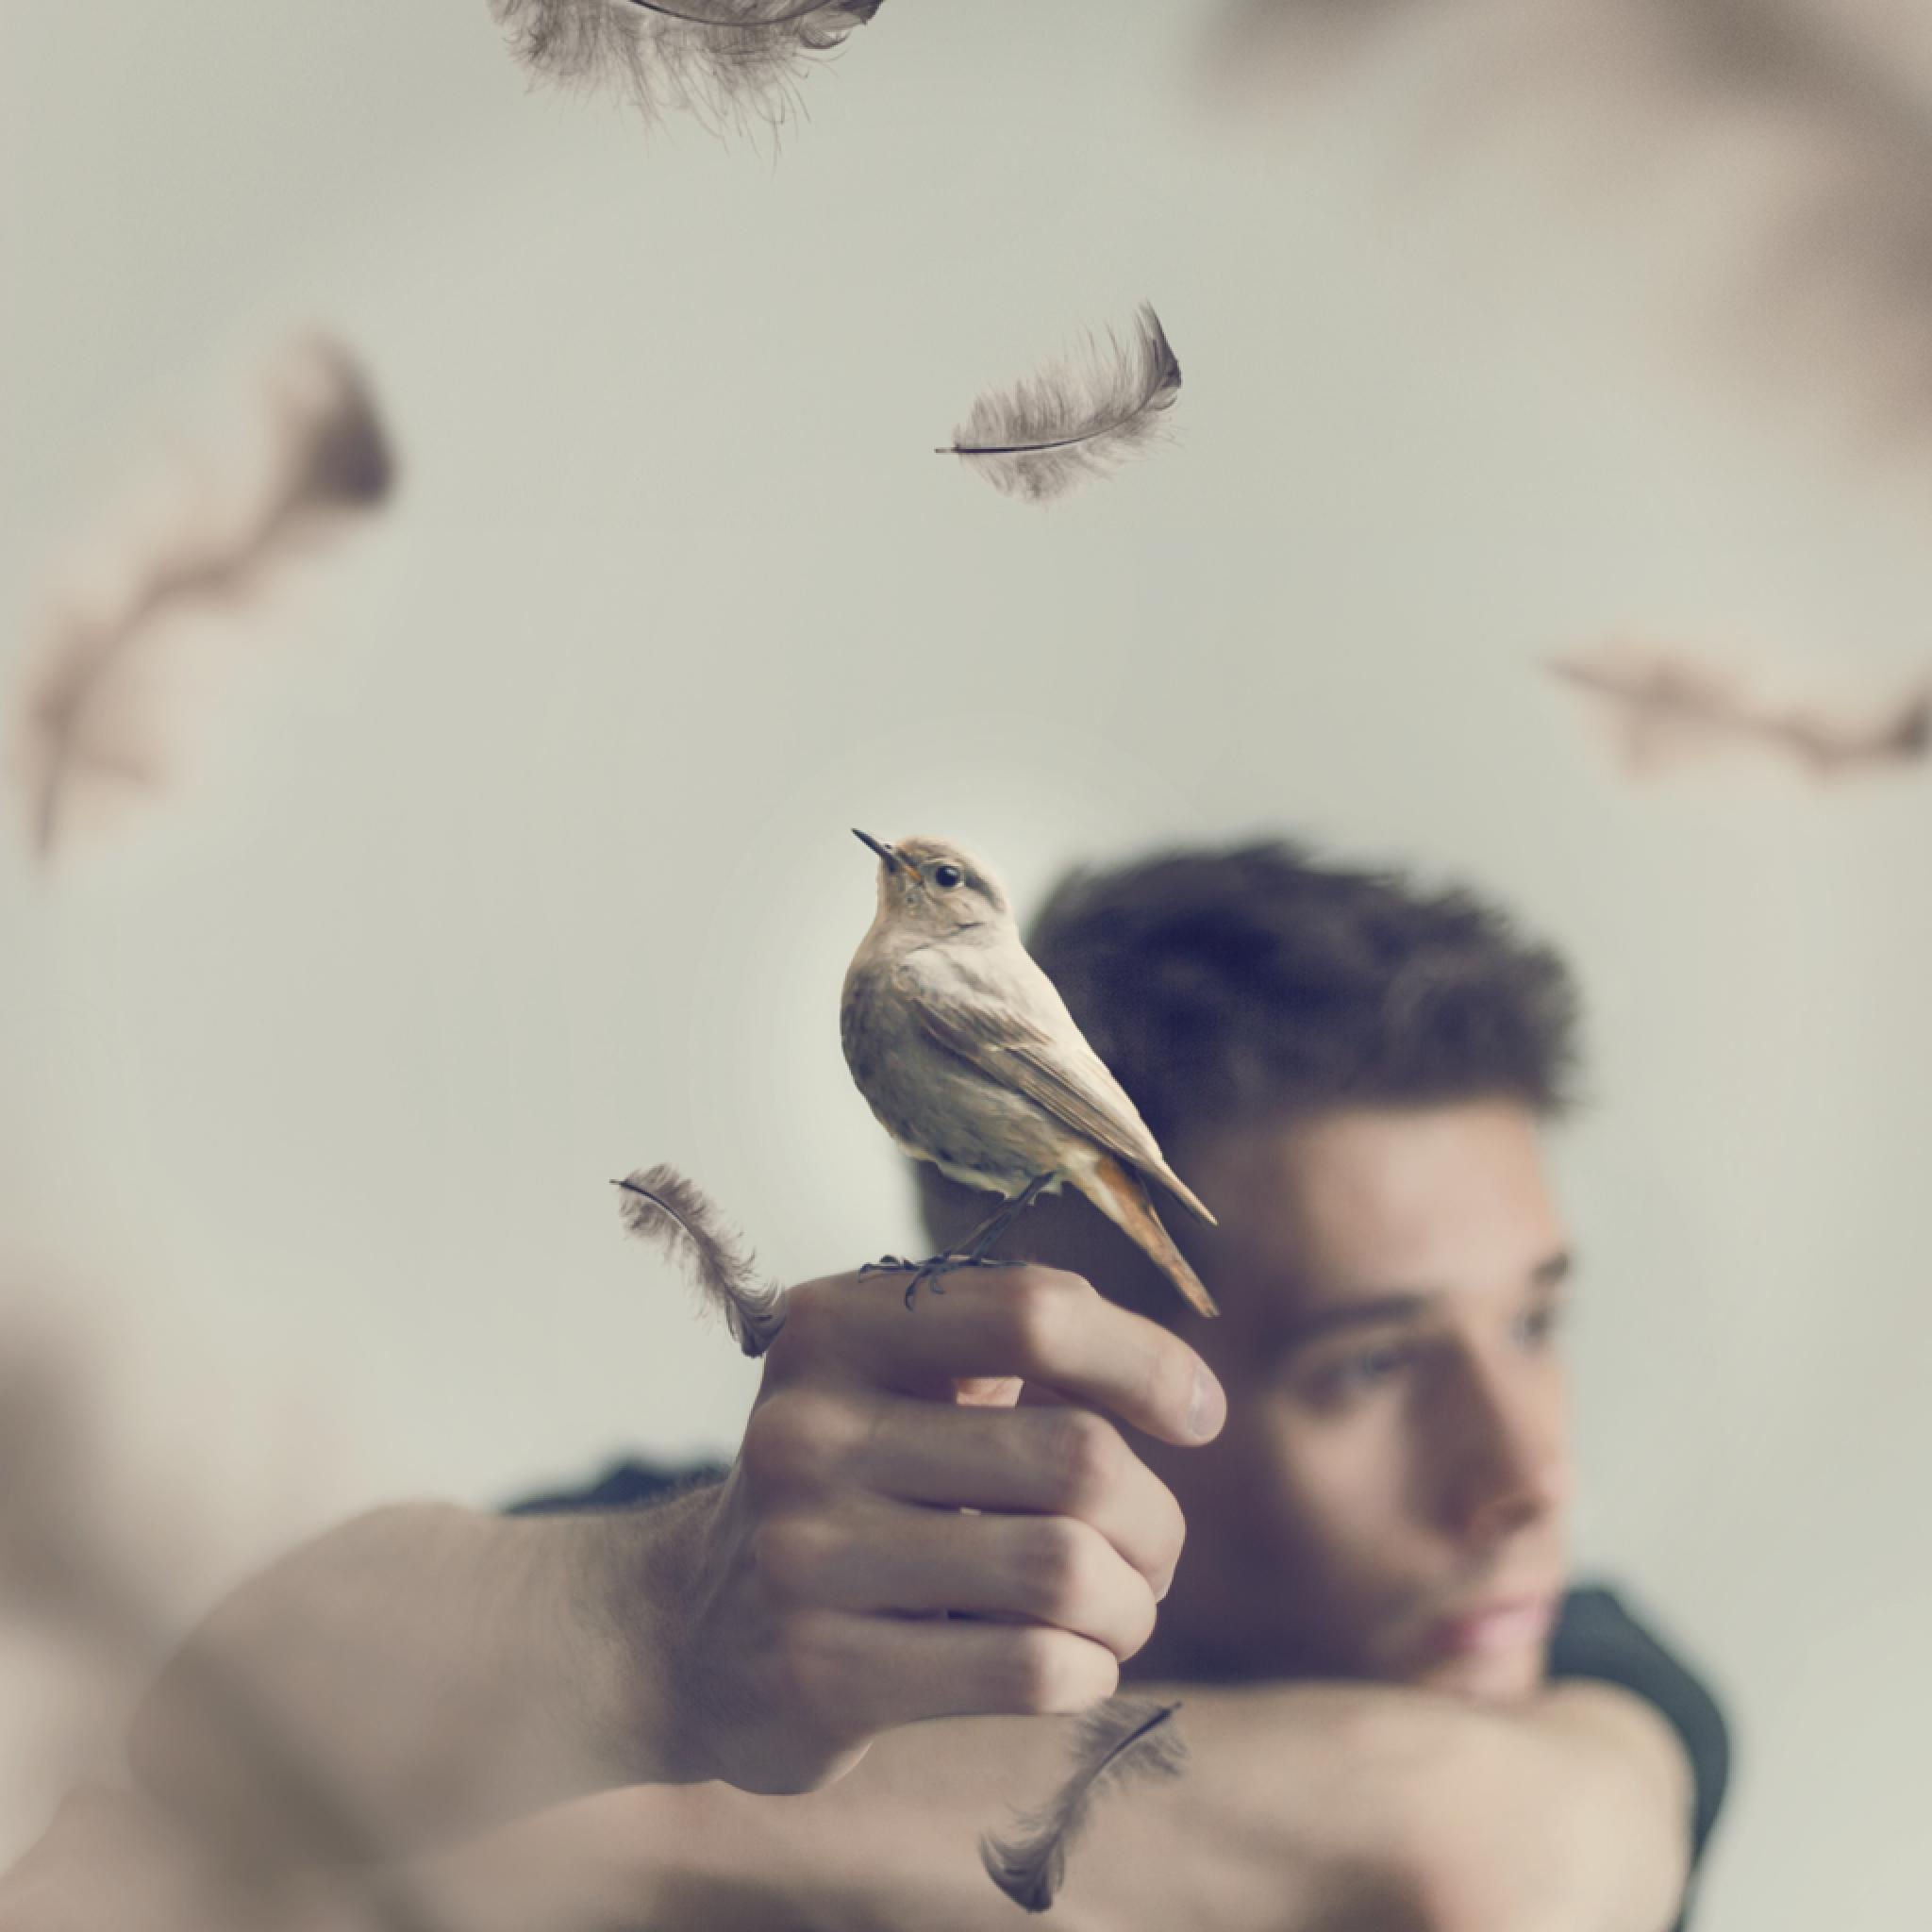 Perhaps I'll Be A Bird One Day by Mario Salvenmoser